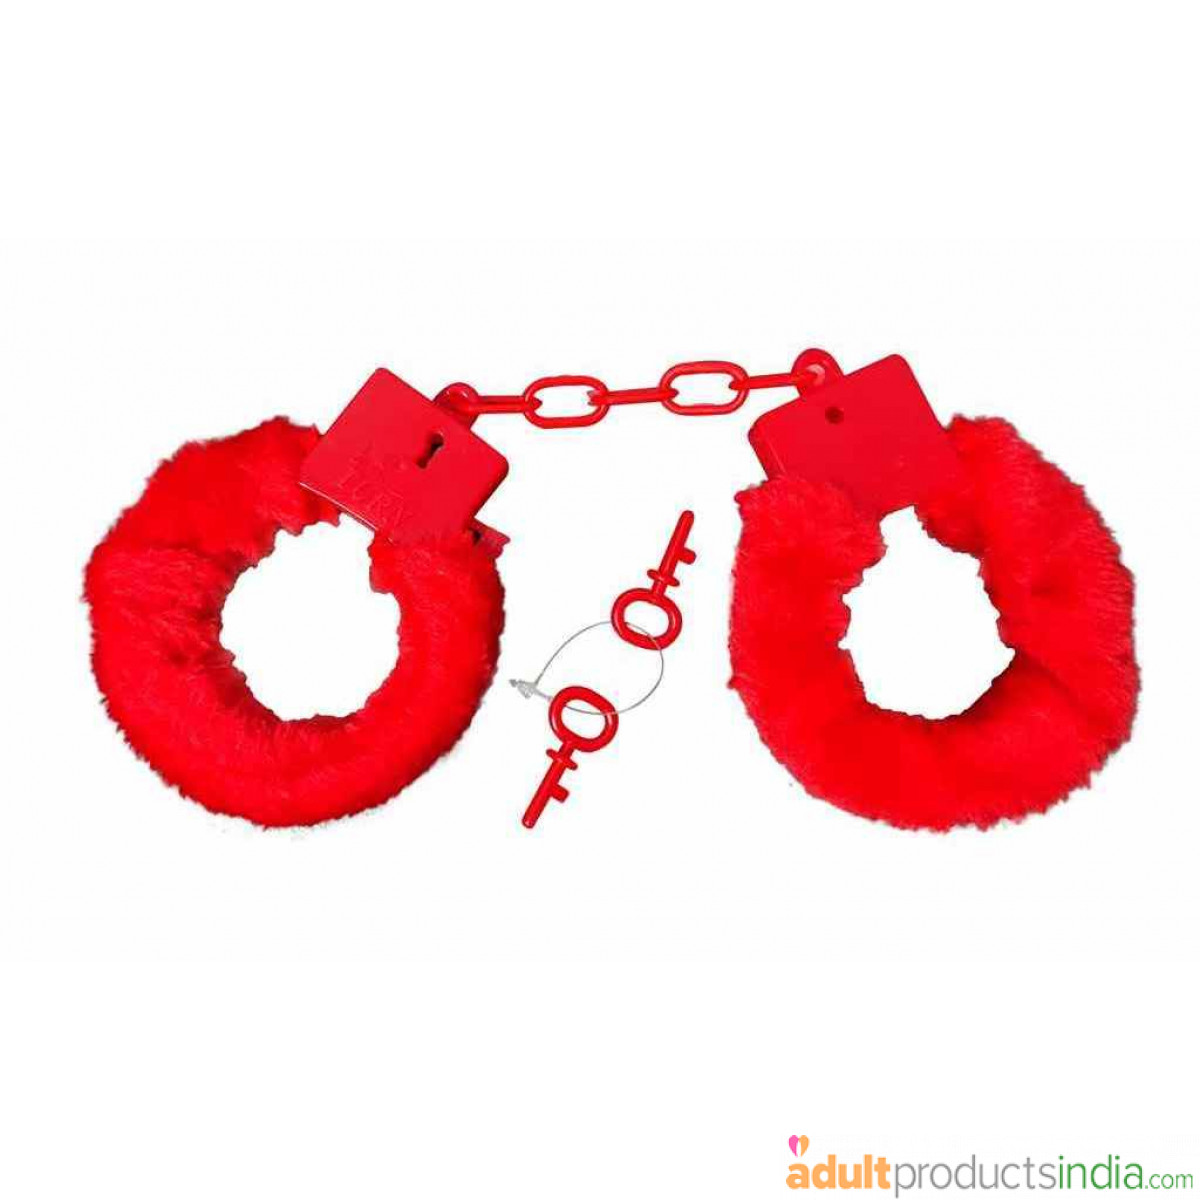 Handcuffs - Red